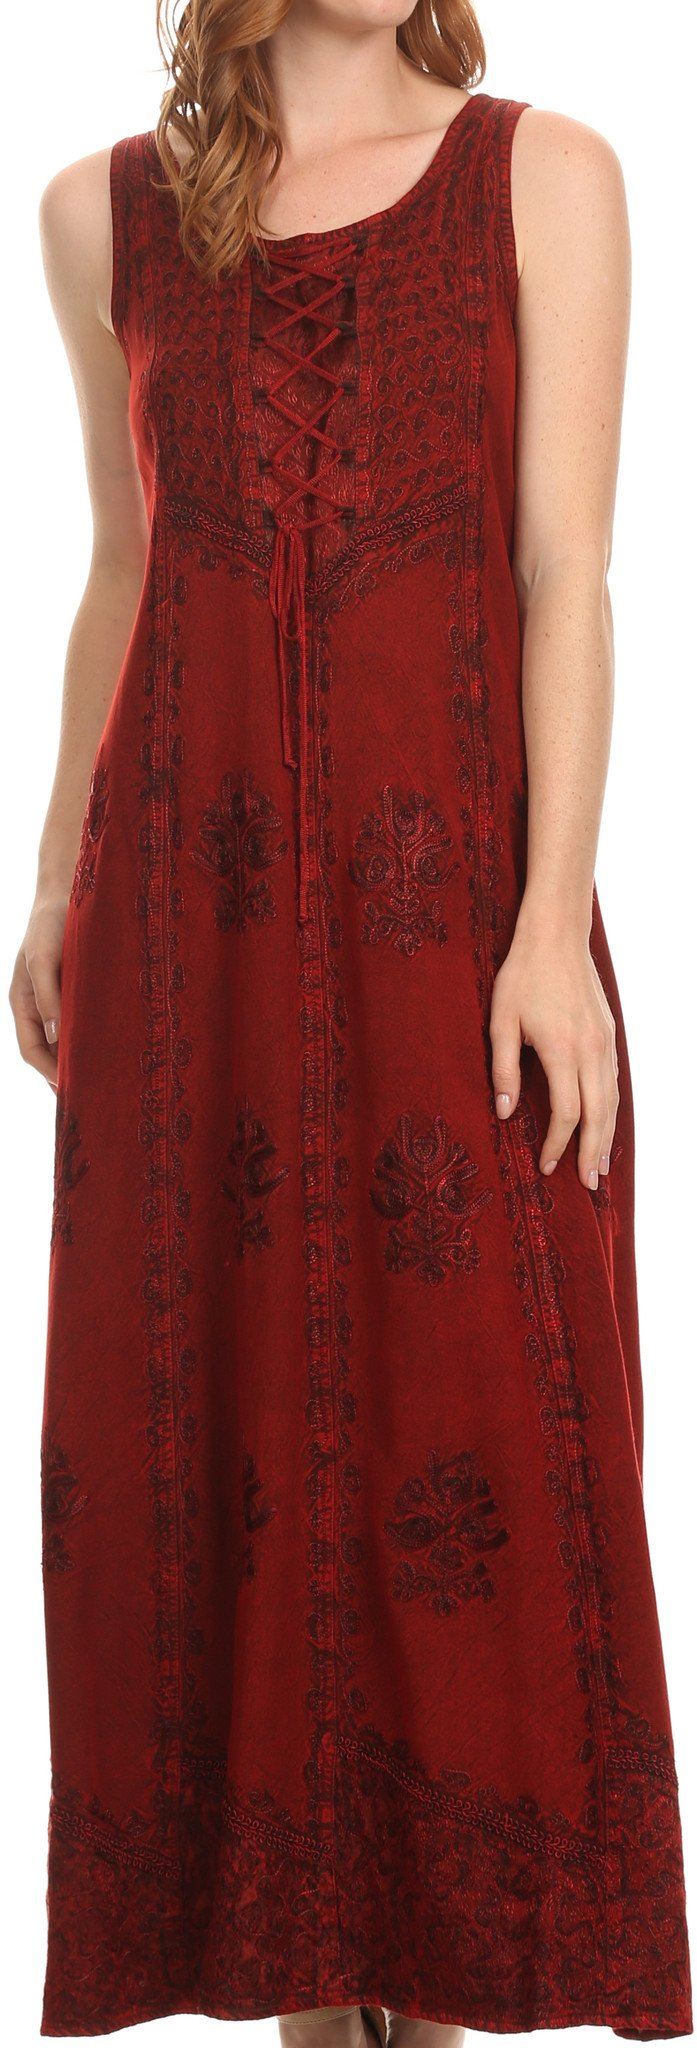 Sakkas Stella Long Tank Top Adjustable Caftan Corset Dress With Embroidery